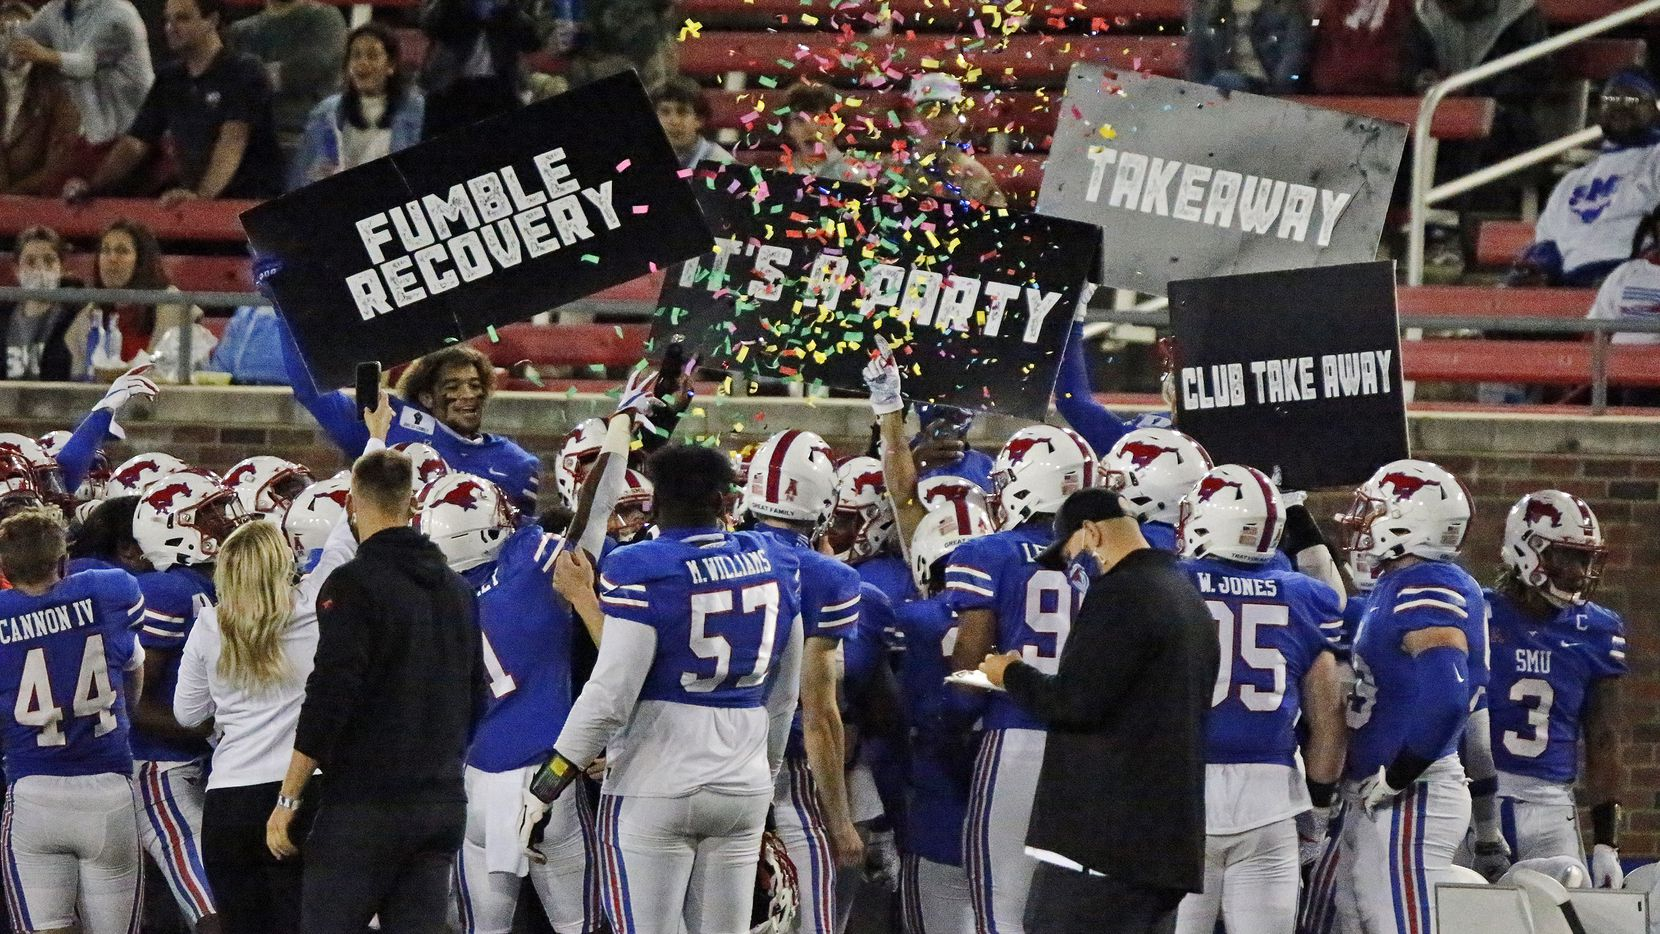 The SMU defensce celebrates on the sideline after a fumble recovery during the first half as SMU hosted Cincinnati University in an AAC football game at Ford Stadium in Dallas on Saturday night, October 24, 2020. (Stewart F. House/Special Contributor)